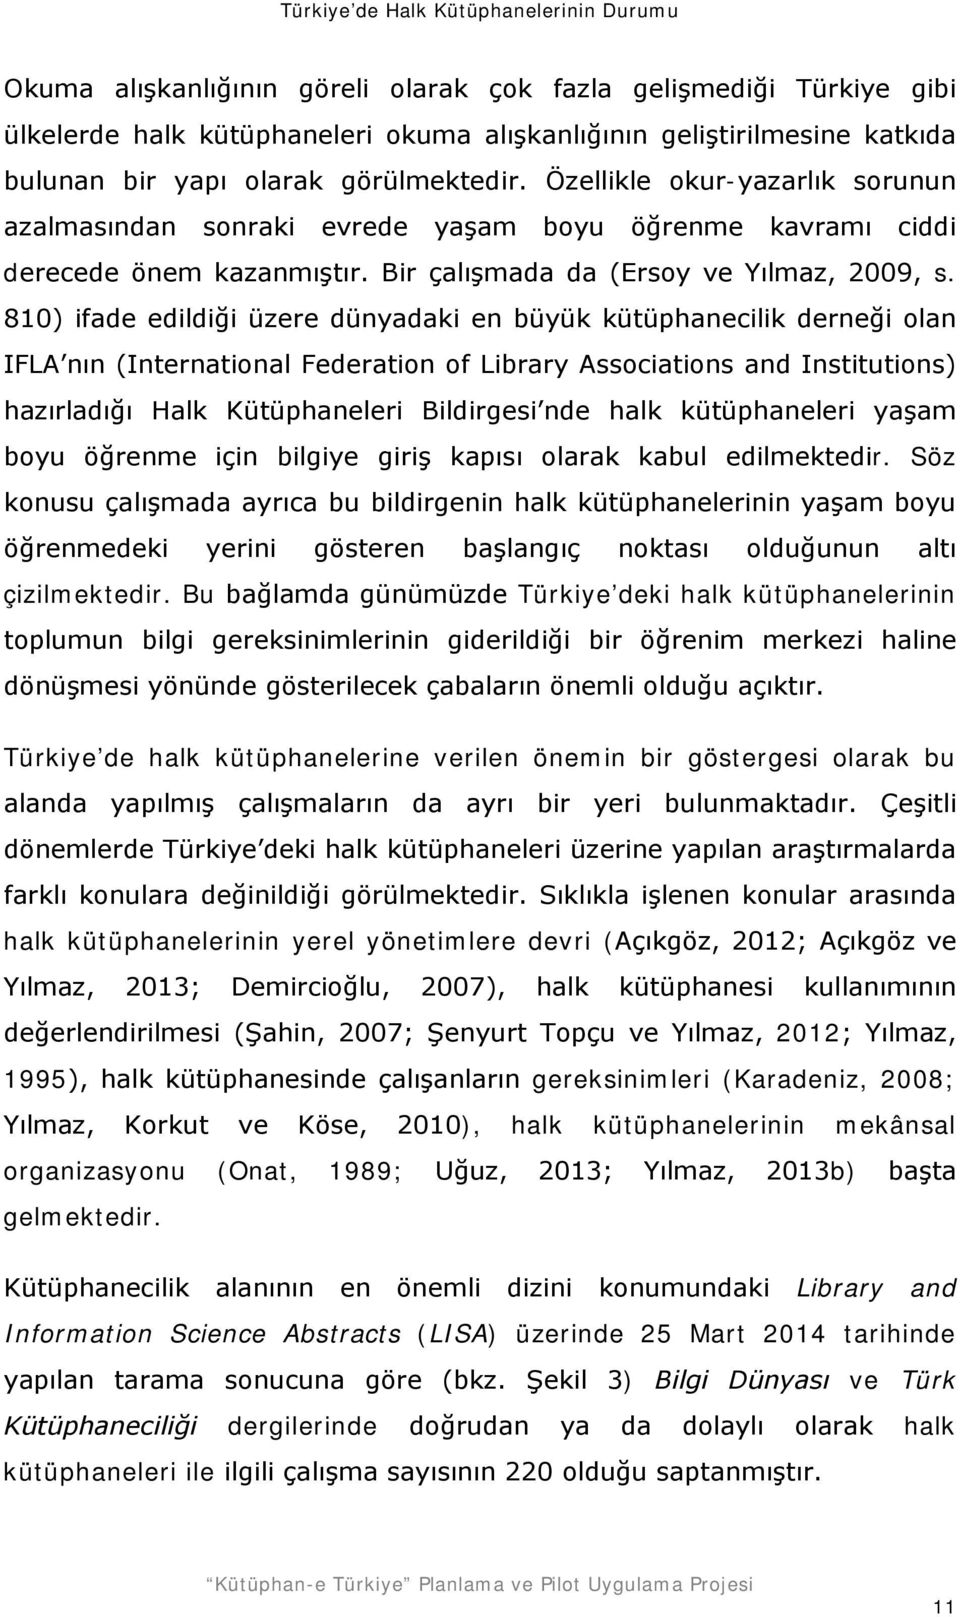 810) ifade edildiği üzere dünyadaki en büyük kütüphanecilik derneği olan IFLA nın (International Federation of Library Associations and Institutions) hazırladığı Halk Kütüphaneleri Bildirgesi nde